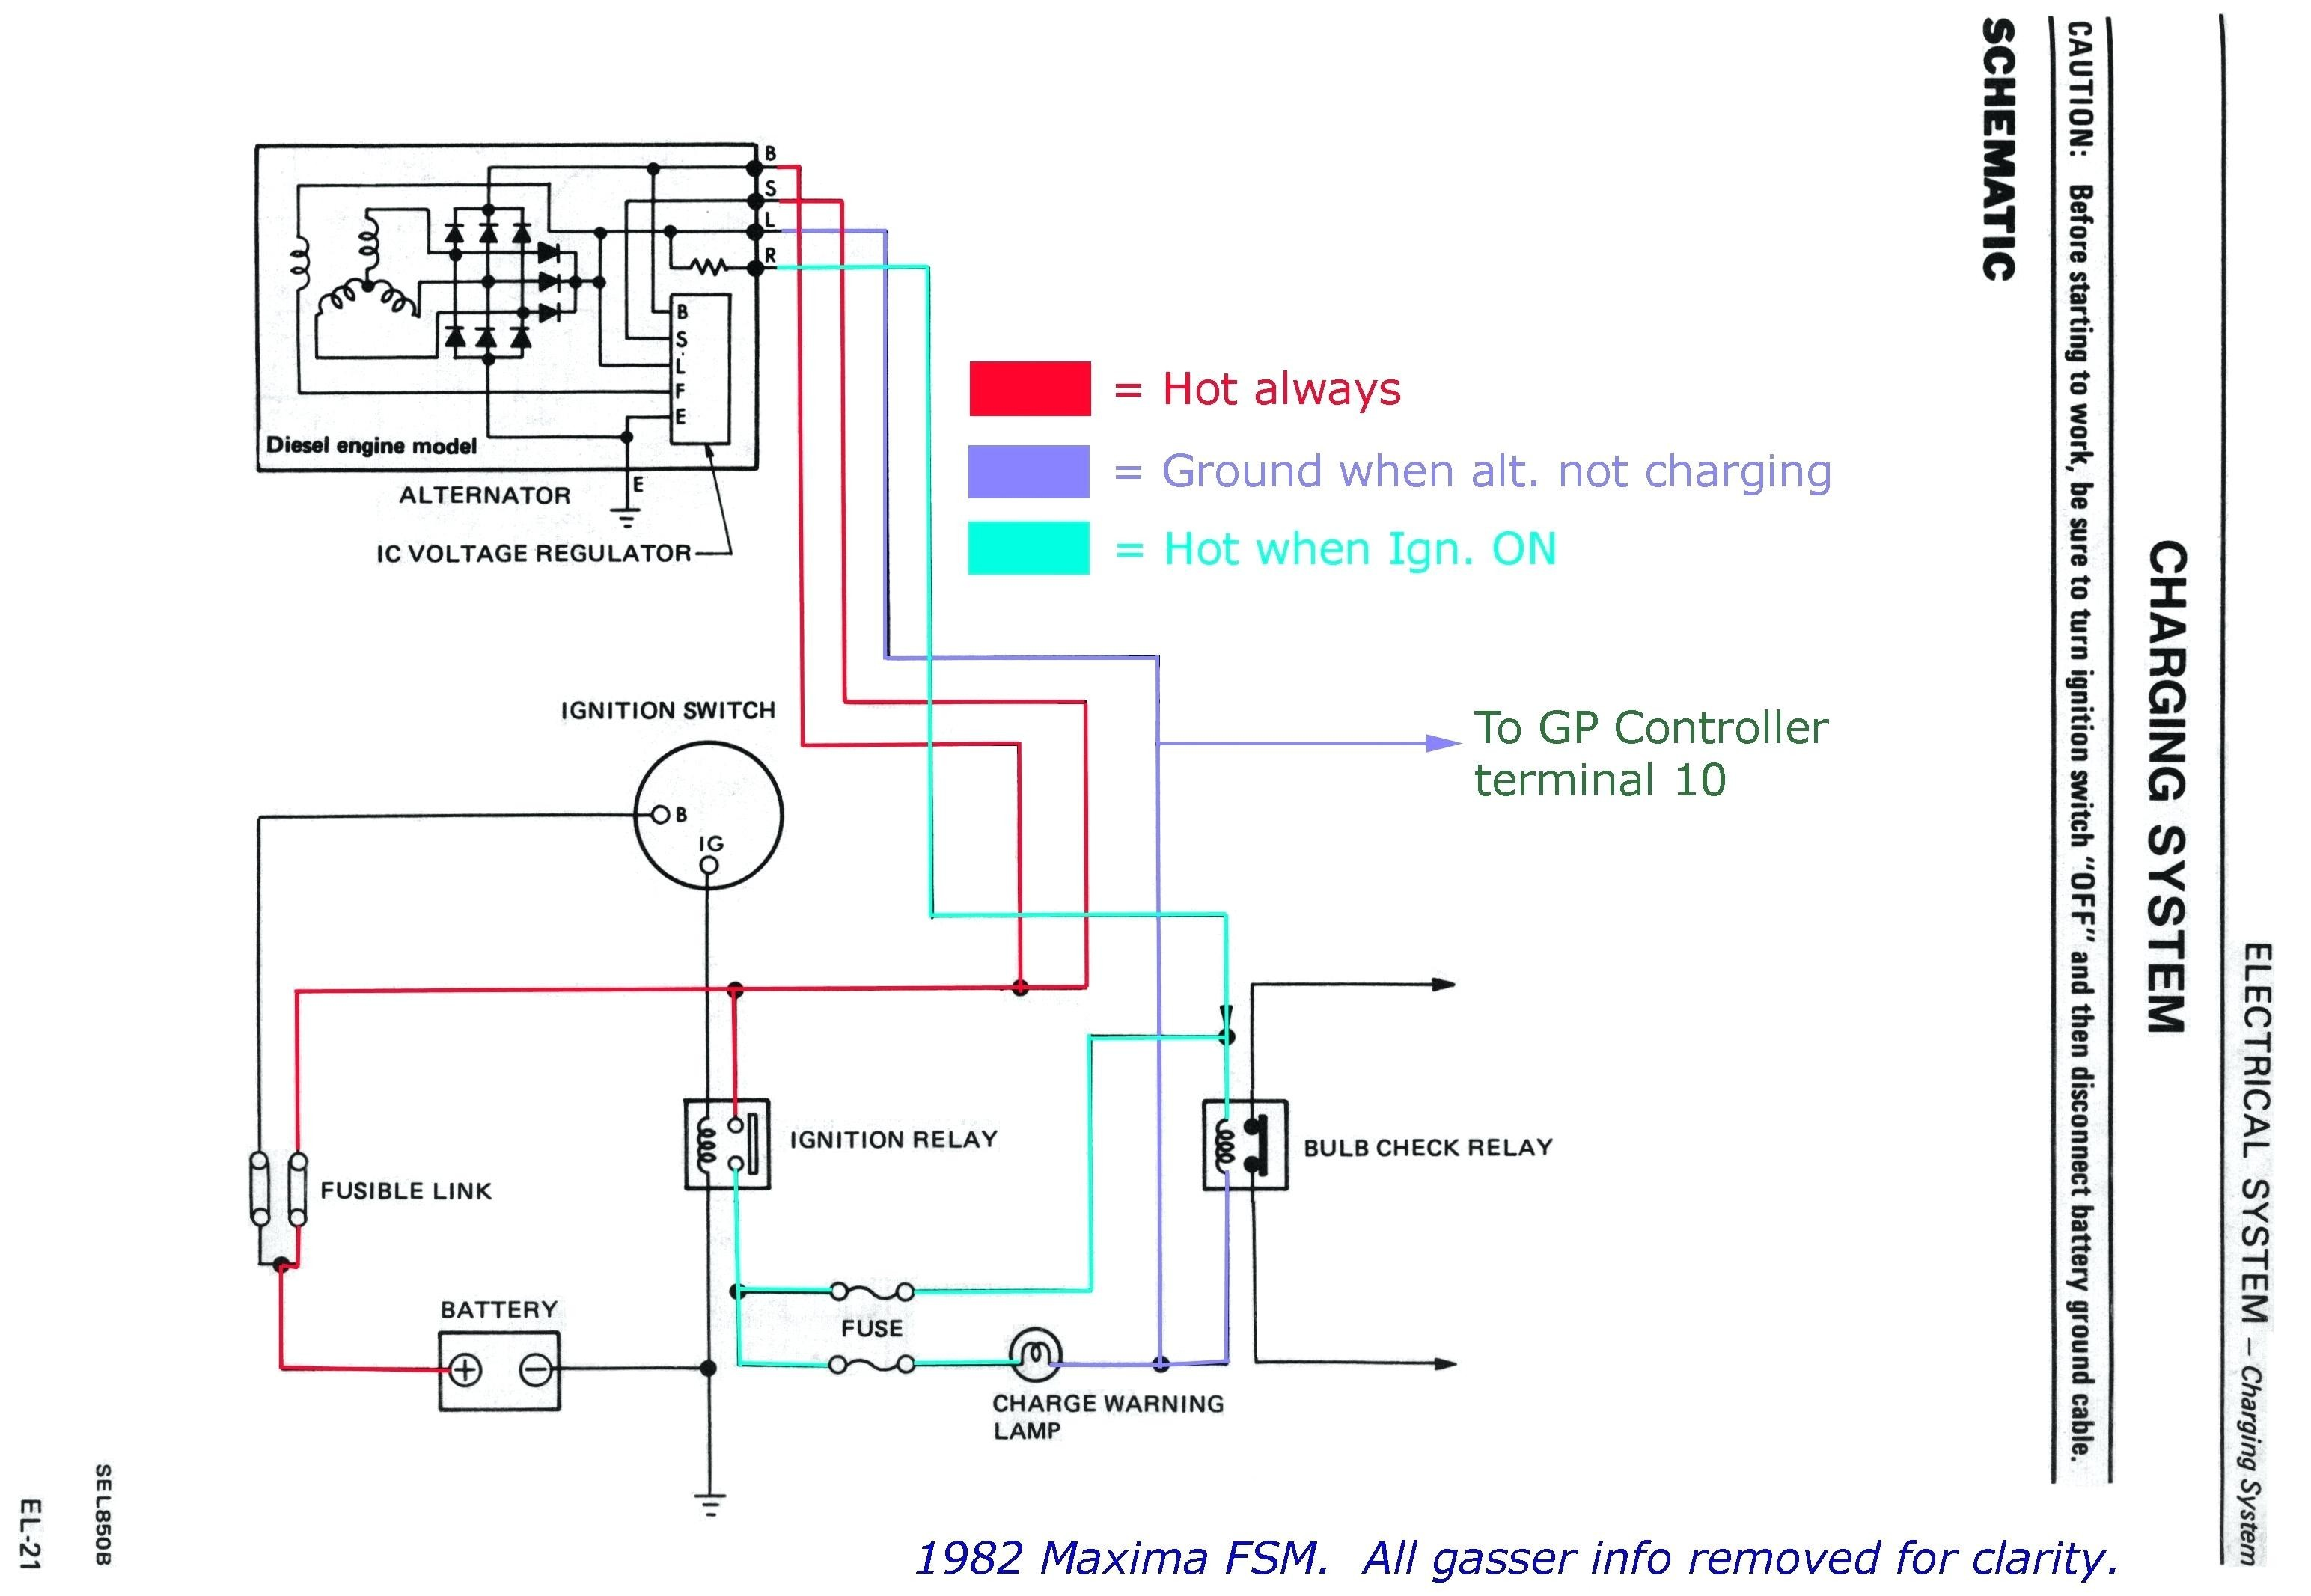 ford ranger wiring diagram as well denso alternator wiring diagram rh plasmapen co Alternator Regulator Wiring